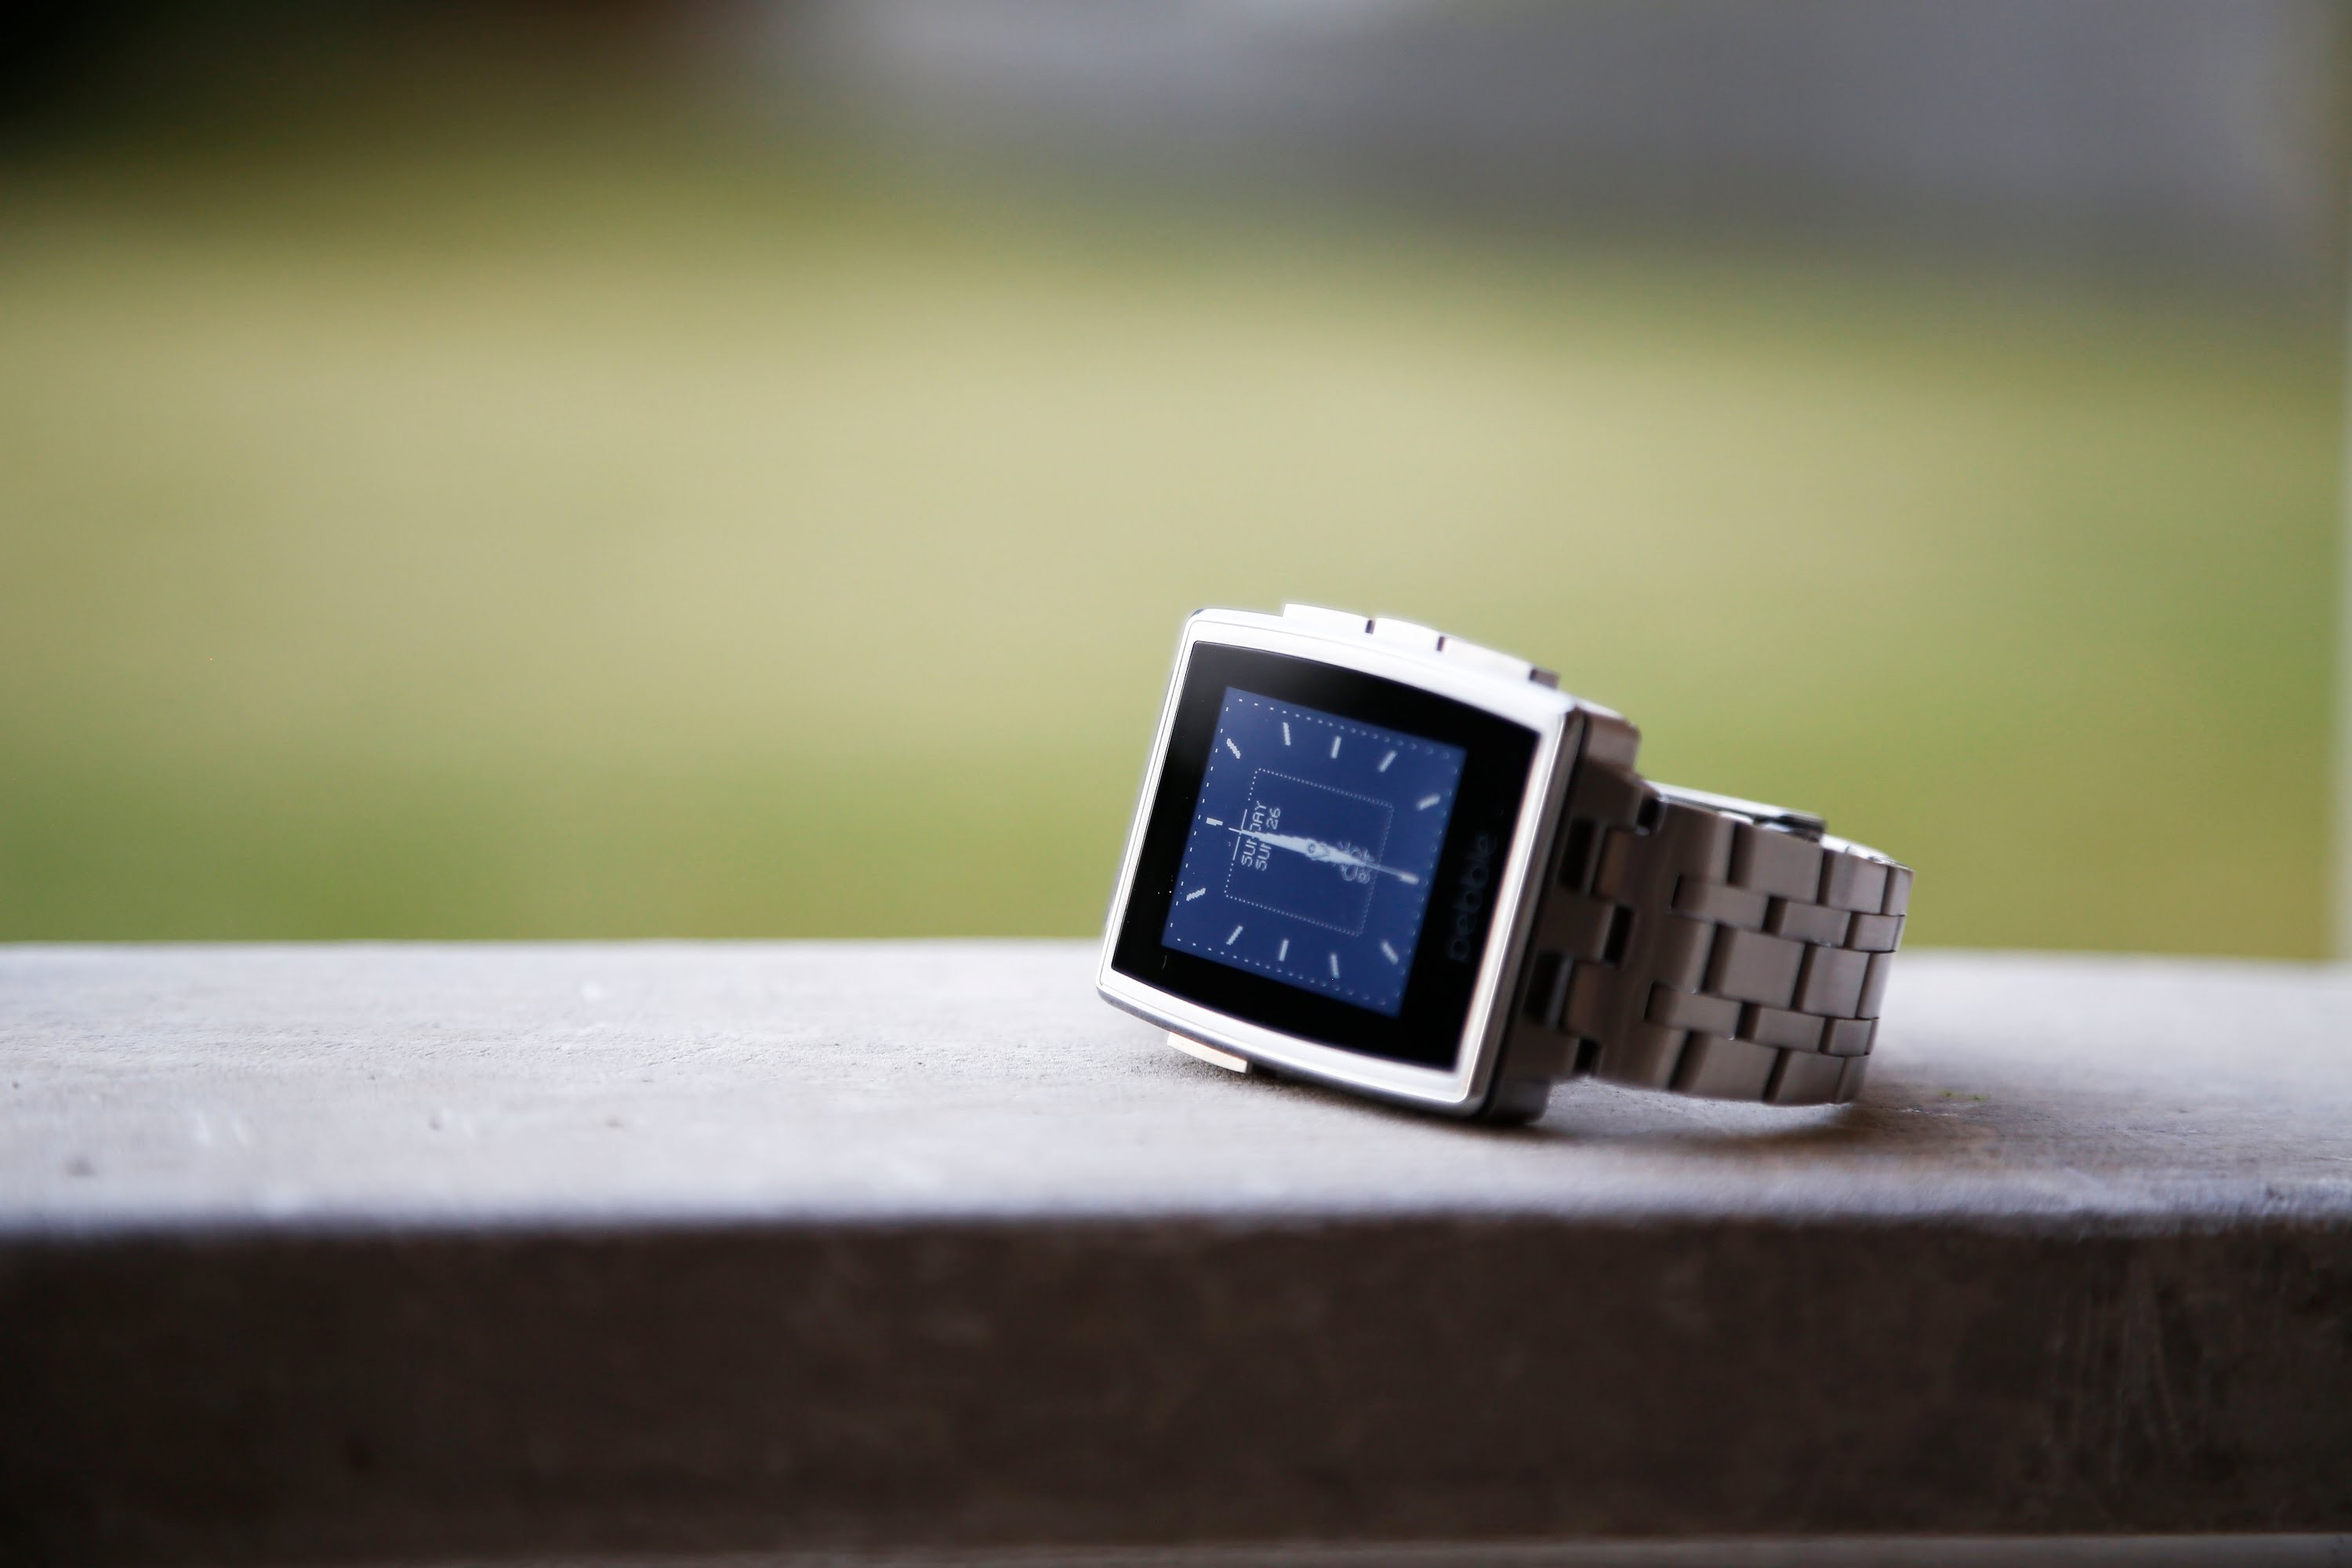 Wallpaper Pebble Steel Smartwatch Limited Edition HD Wallpapers Download Free Images Wallpaper [1000image.com]